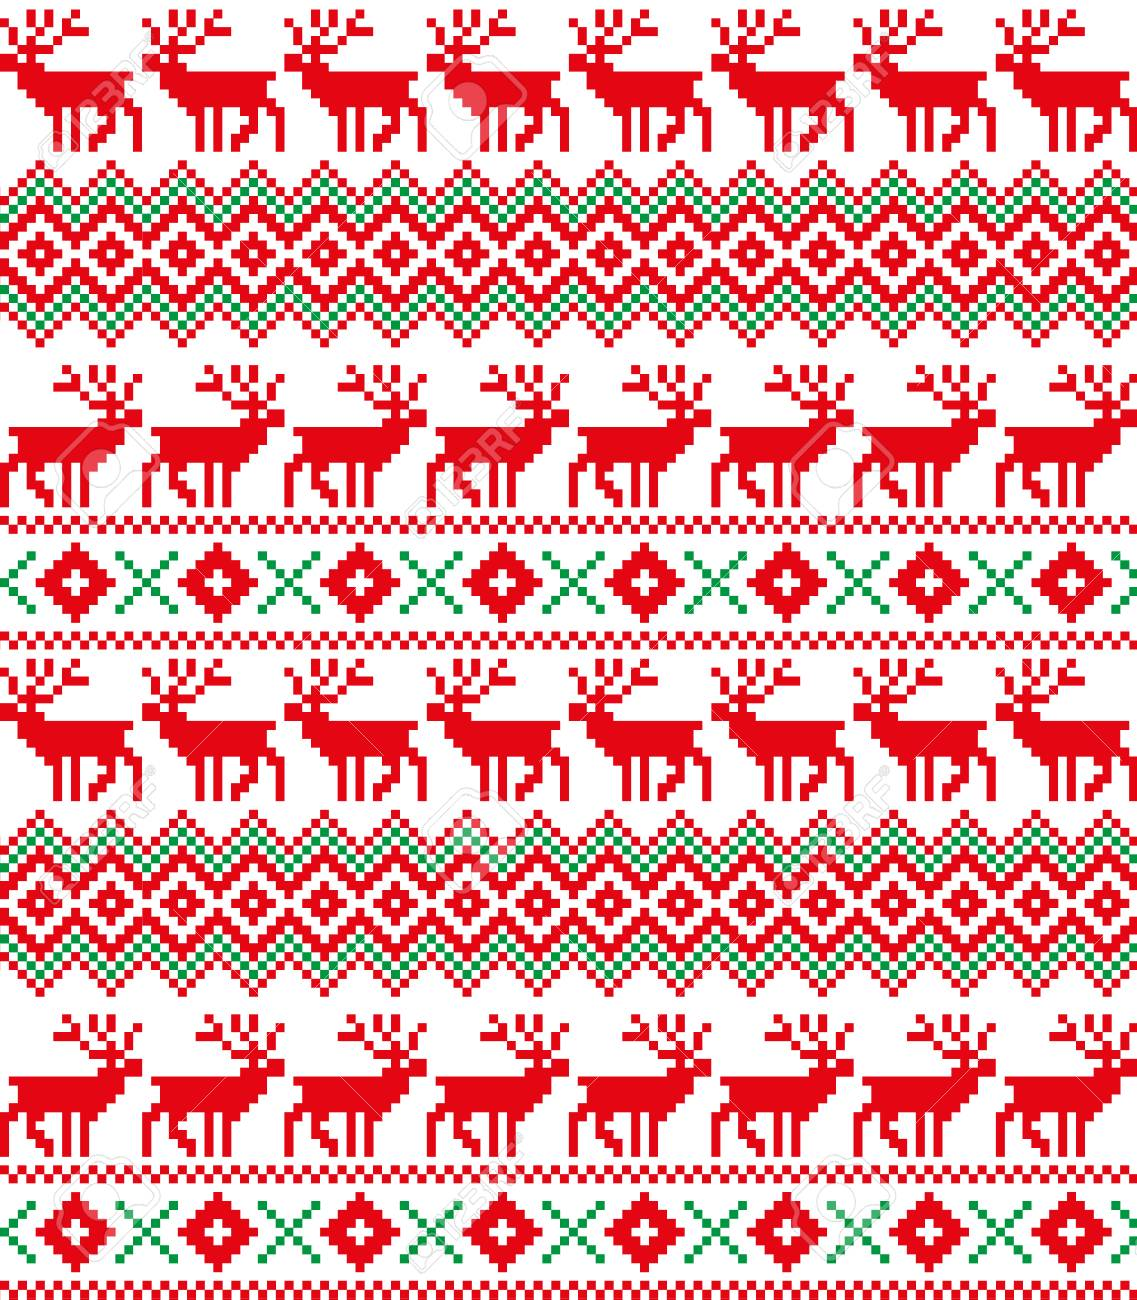 New Year S Christmas Pattern Pixel For Print Stock Photo Picture And Royalty Free Image Image 89133619